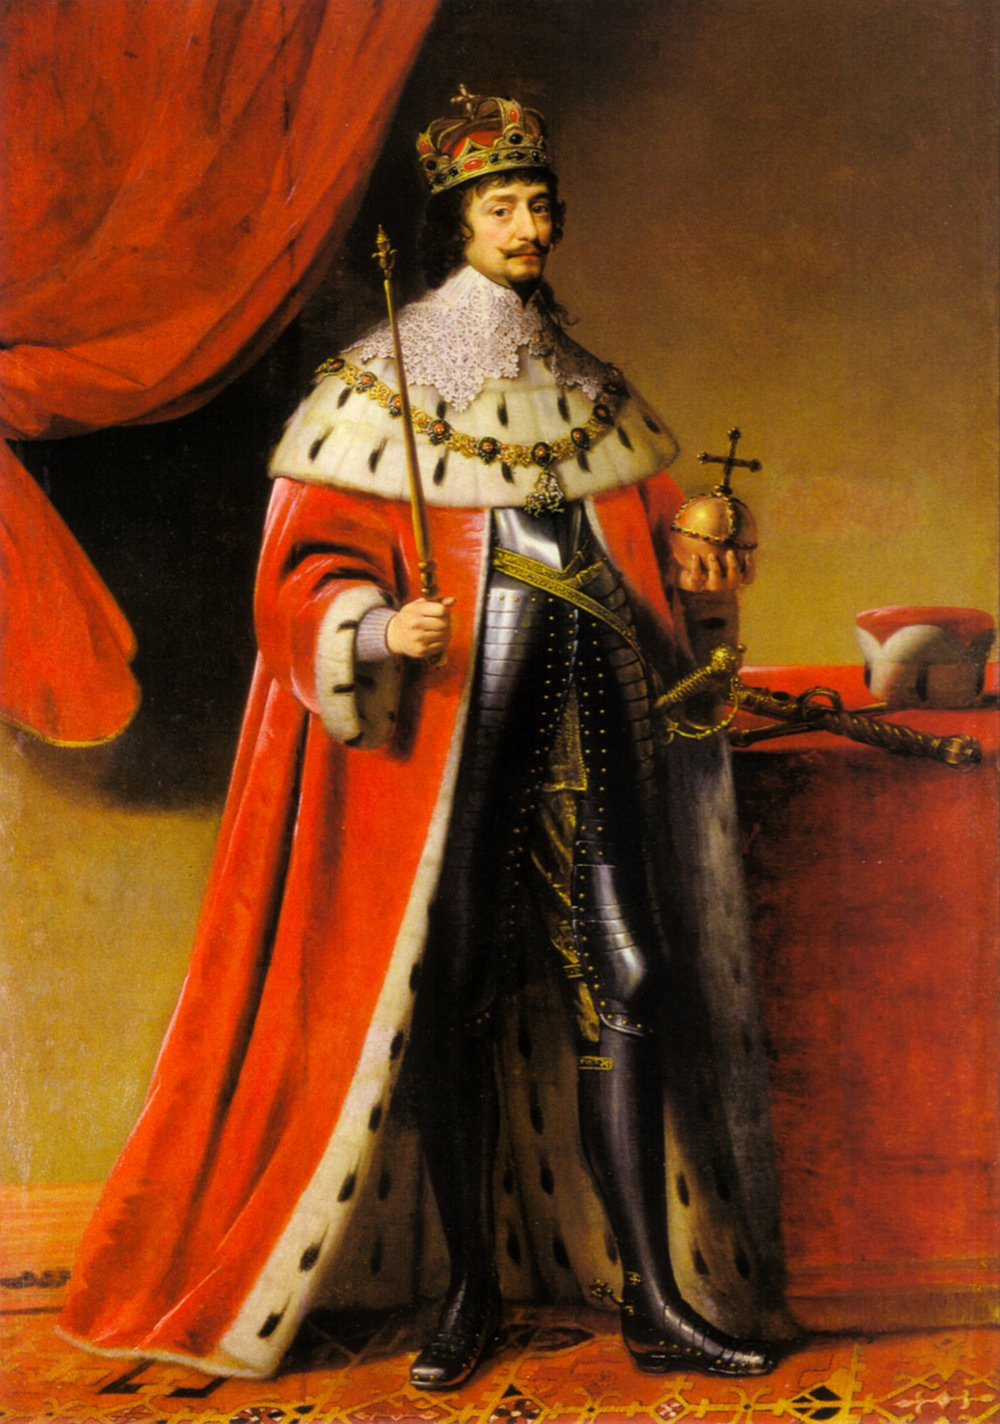 Gerard van Honthorst 1590-1656 Portrait of Frederick V, Elector Palatine, 1634 Oil on canvas Heidelberg, Kurpfalzisches Museum  Image source: https://commons.wikimedia.org/wiki/File:Gerard_van_Honthorst_006.jpg Apart from the fact that Frederick here wears royal robes, he has nothing in common with the Renaissance type that Turner includes in the painting. The seventeenth century preferred fancy lace collars, and length and elegance in both physique and facial hair.